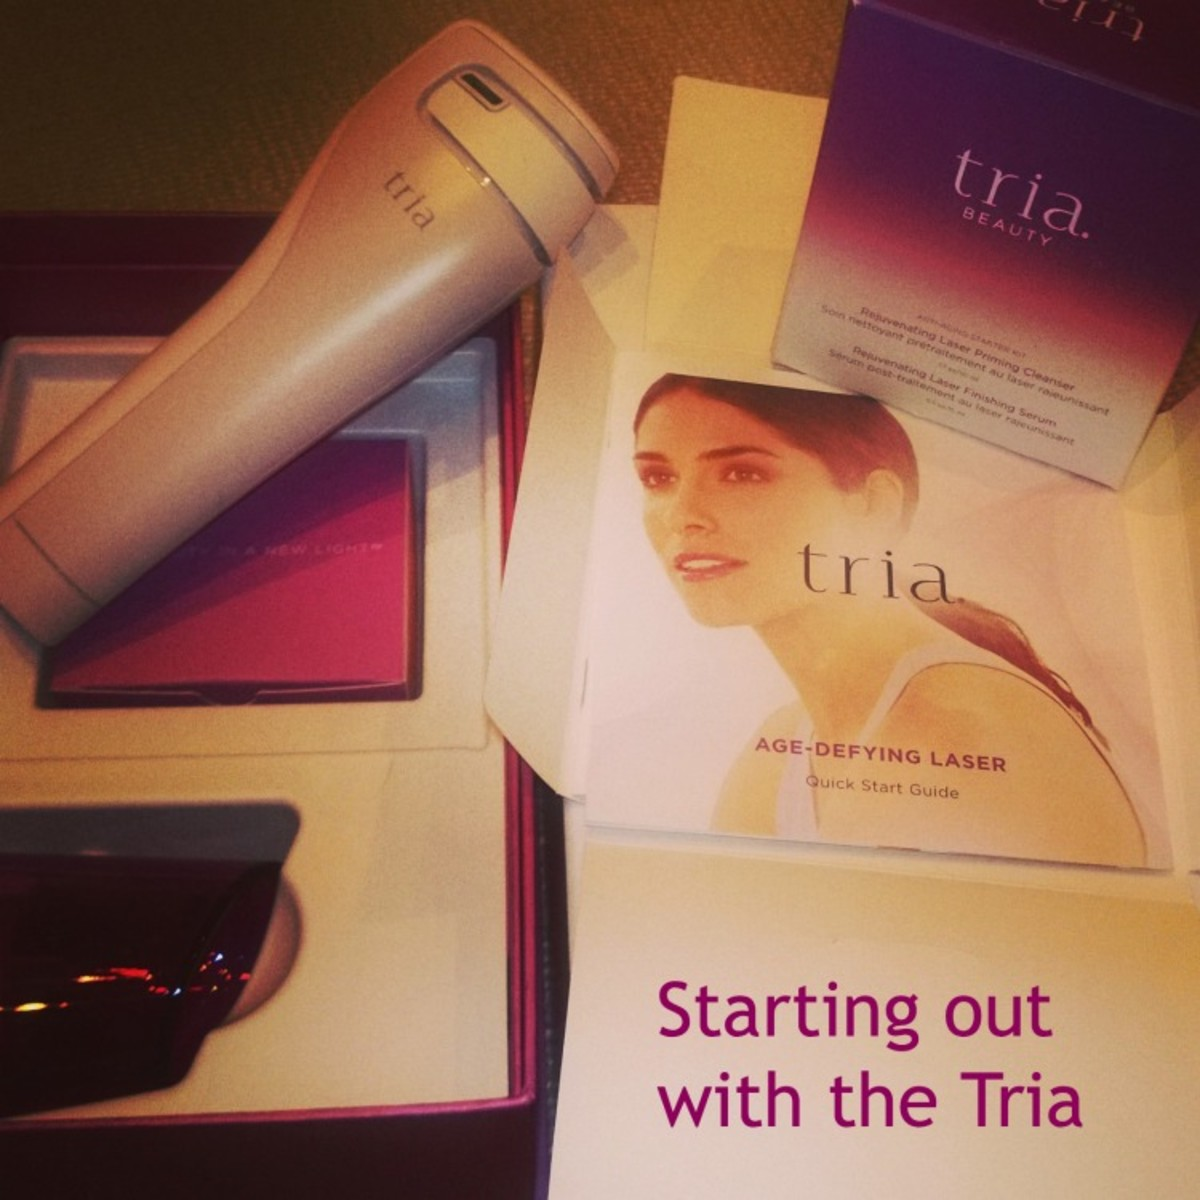 tria face laser instructions